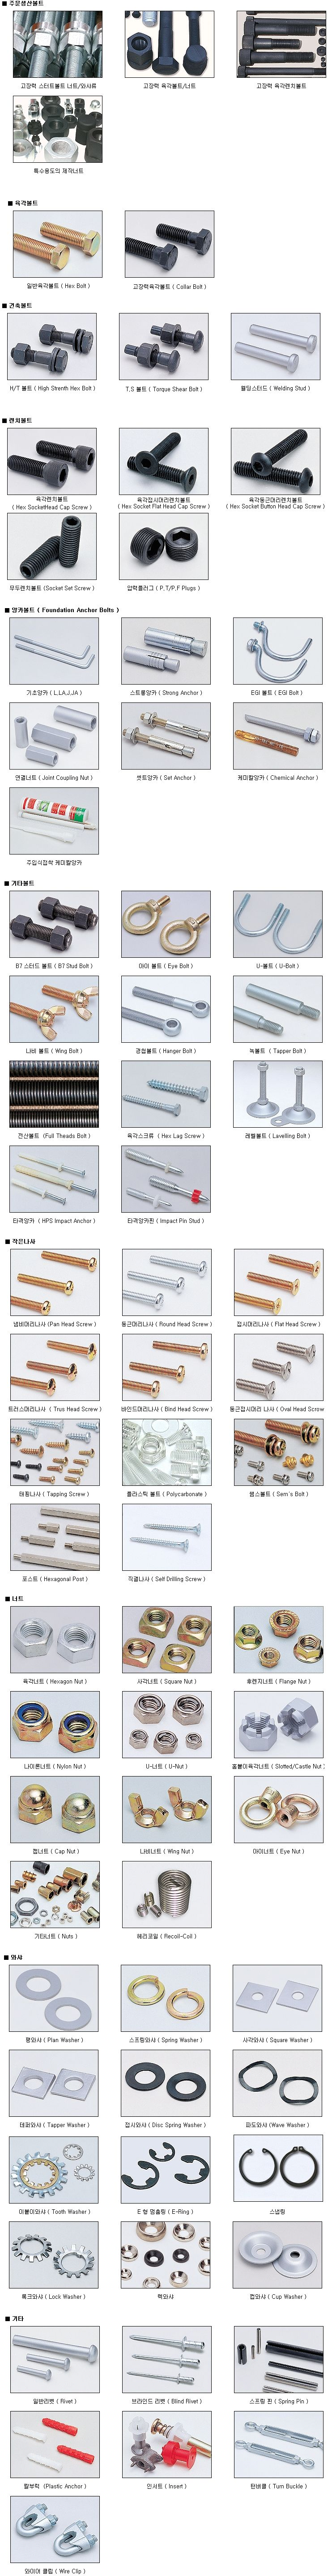 728 best diy guides charts posters images on pinterest tools bolt and nut type nvjuhfo Images